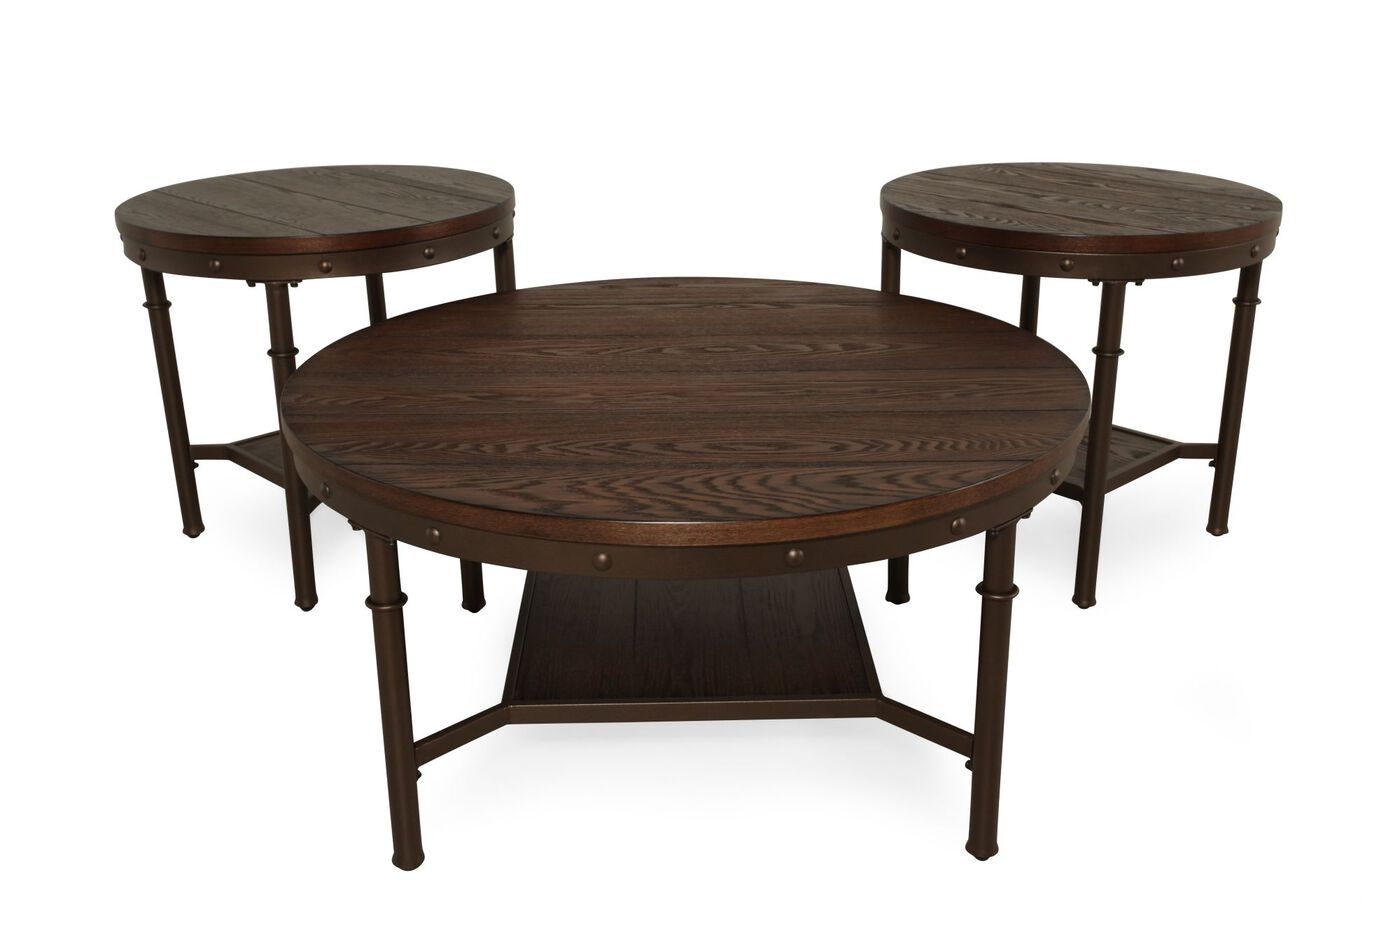 Ashley Sandling Coffee Table Set Mathis Brothers Furniture : ASH T27704713 1 from www.mathisbrothers.com size 1400 x 933 jpeg 71kB